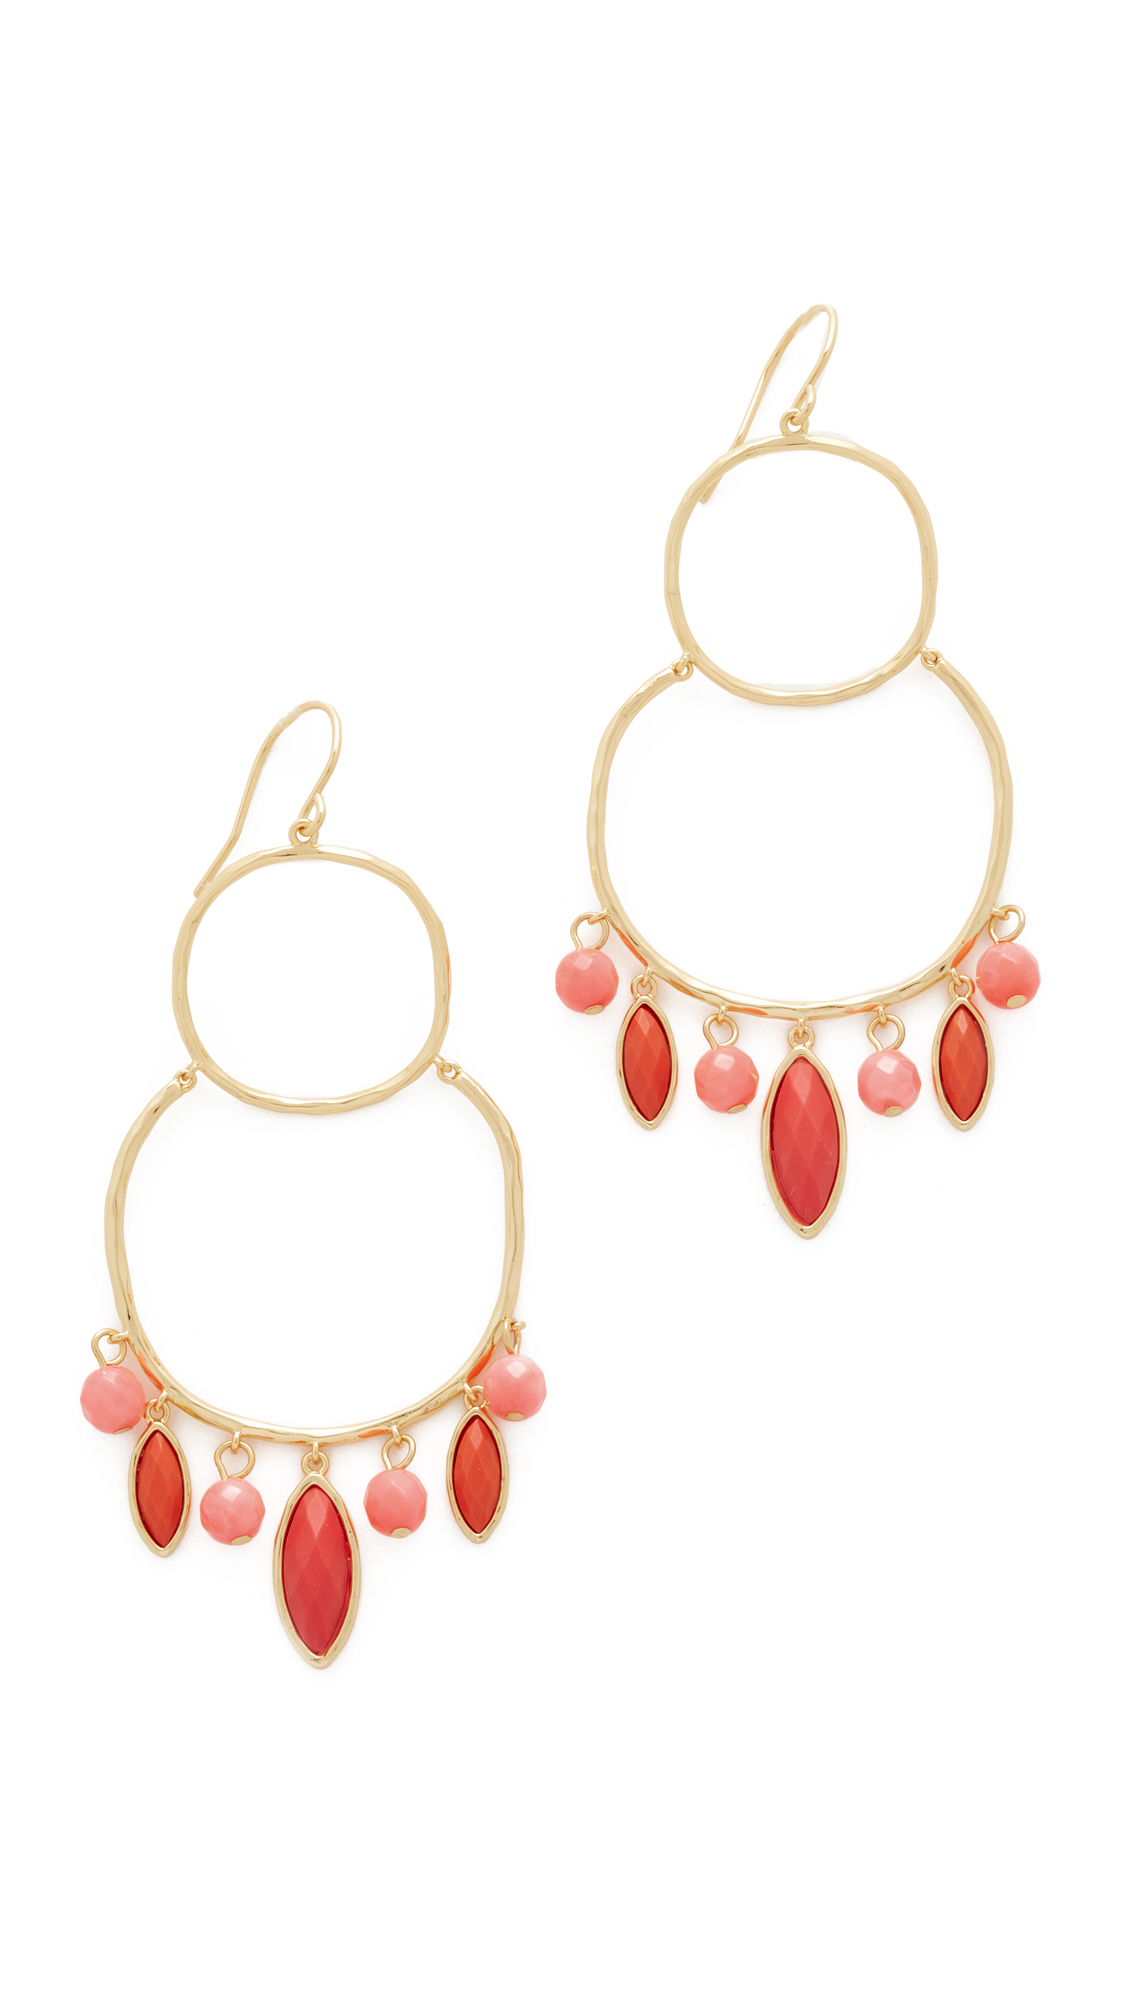 Gorjana Eliza Gemstone Chandelier Earrings - Pink Coral/Gold